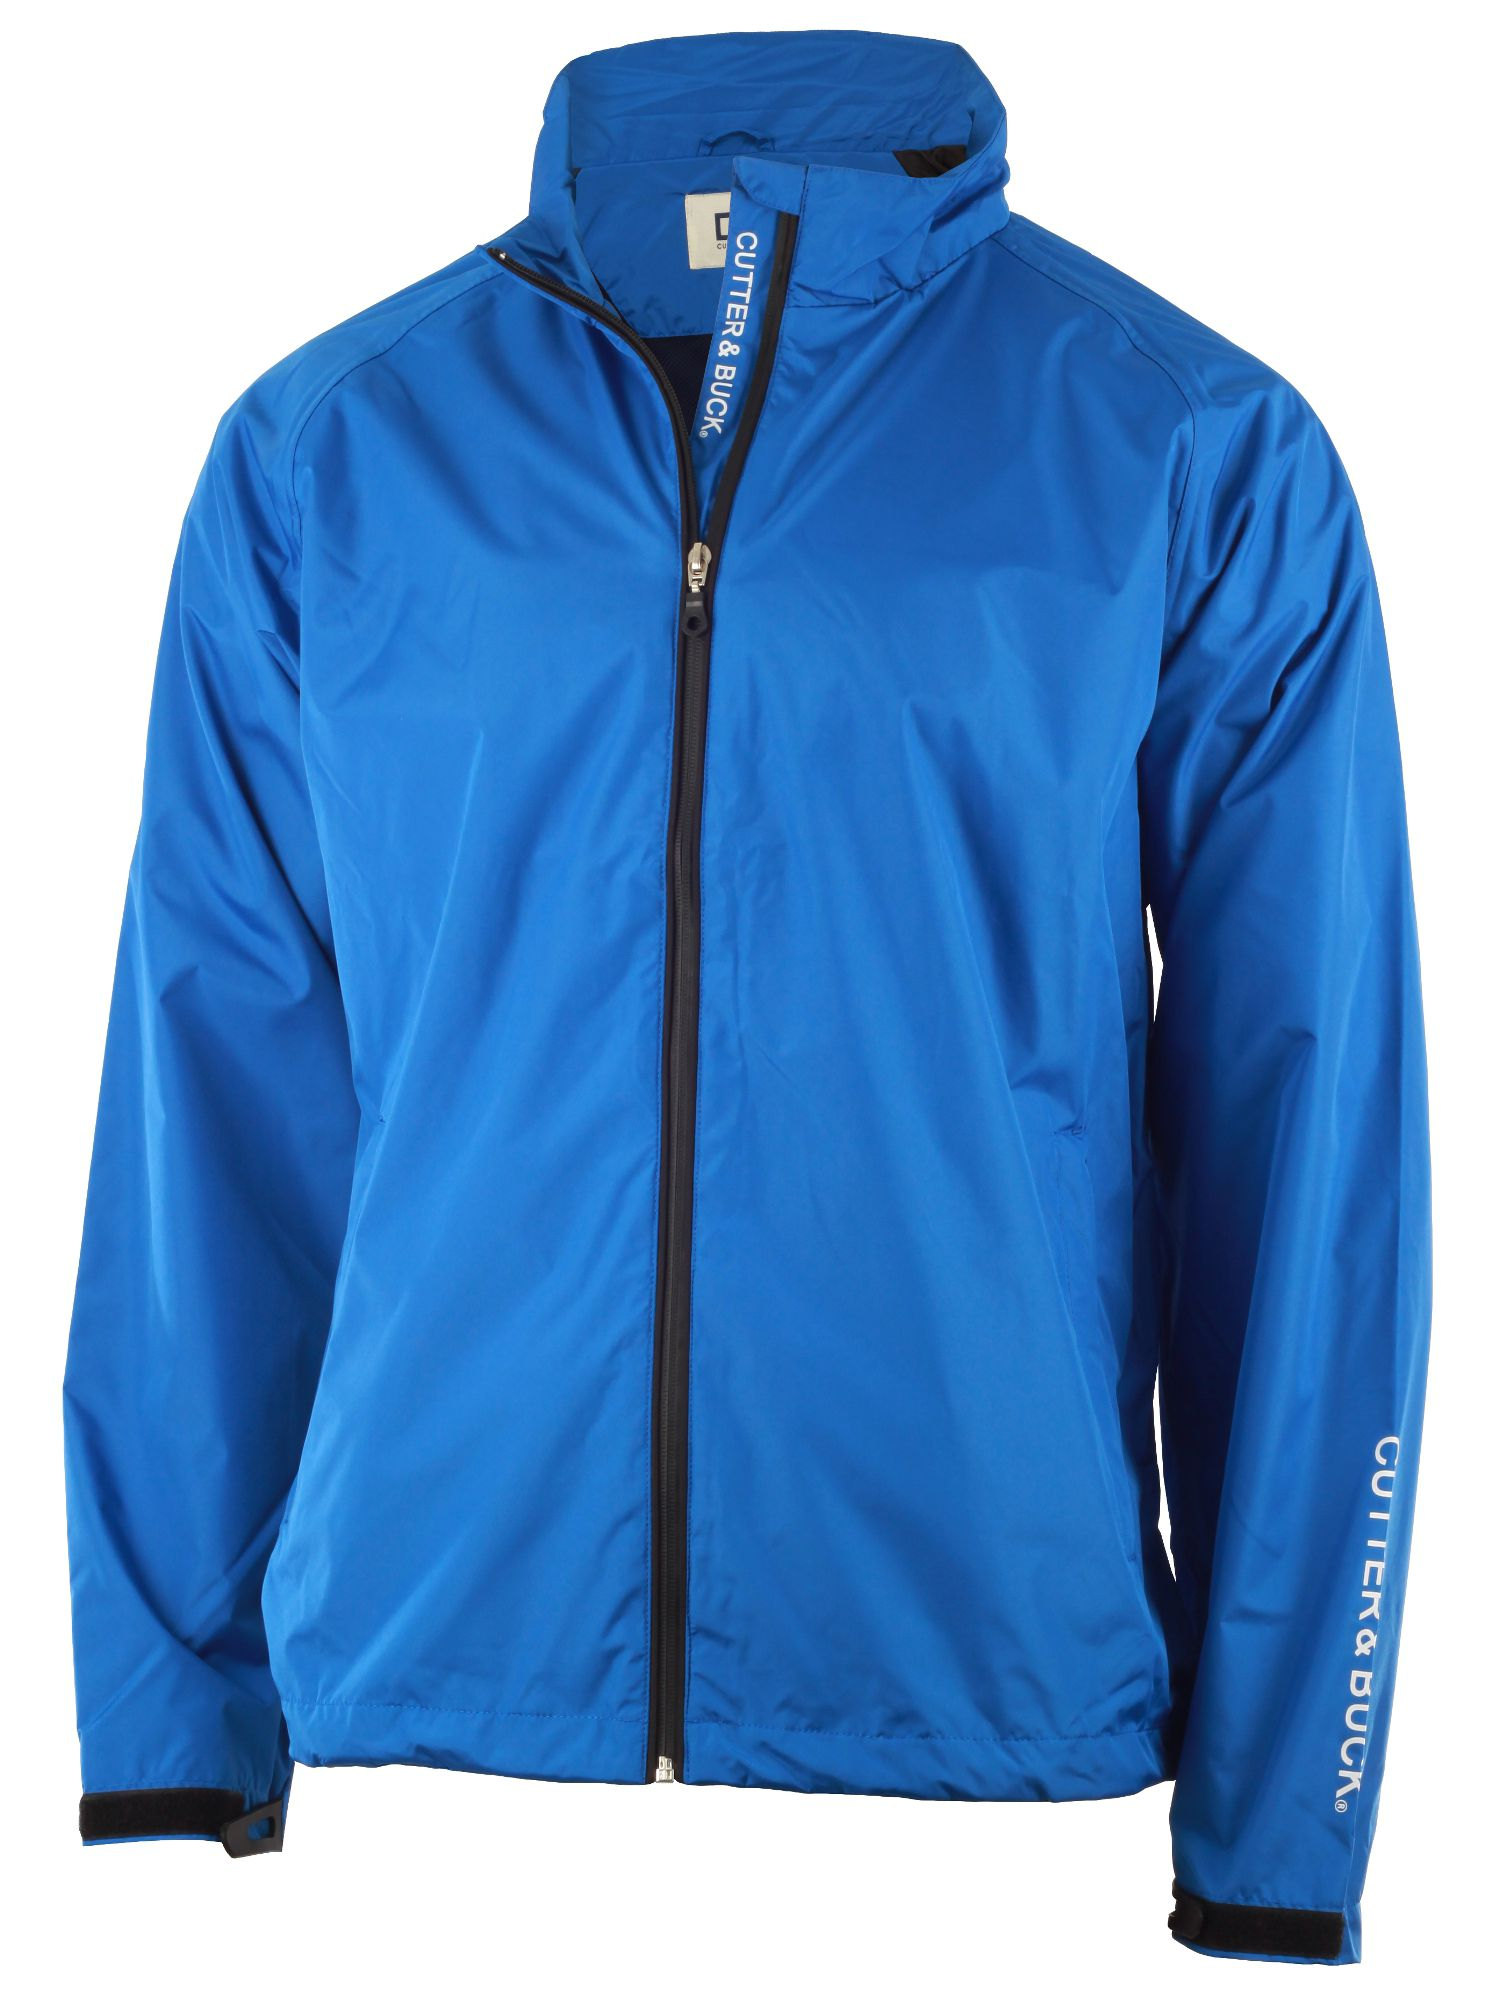 Stormstopper waterproof jacket